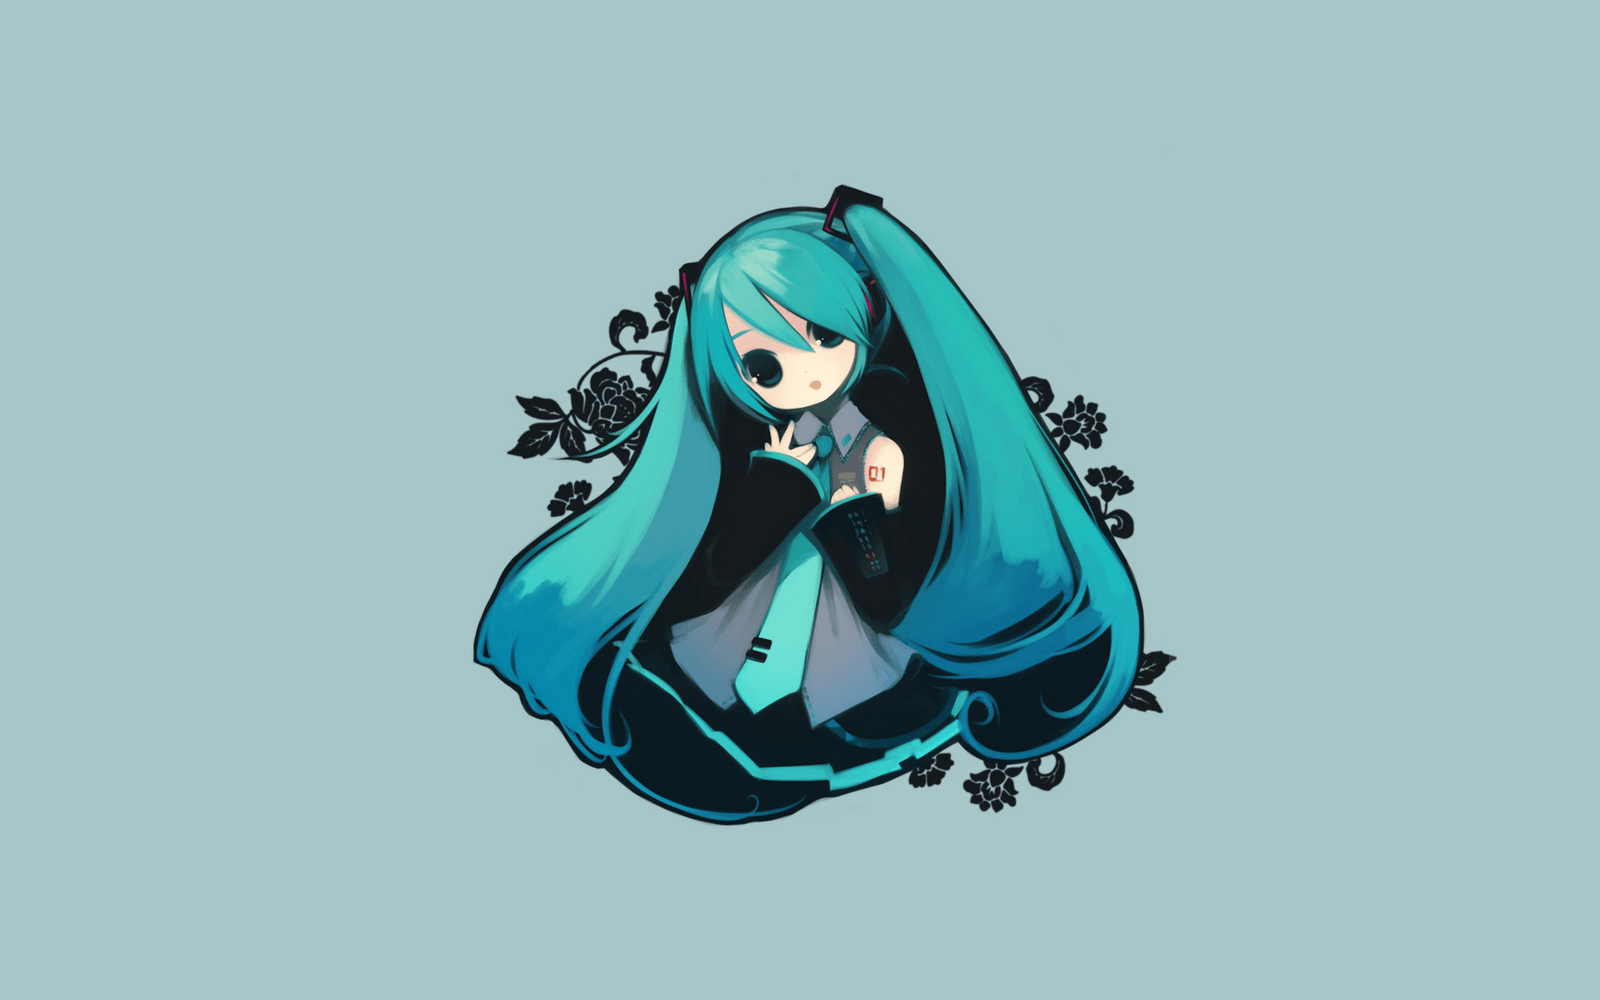 Anime chibi vocaloid wallpapers